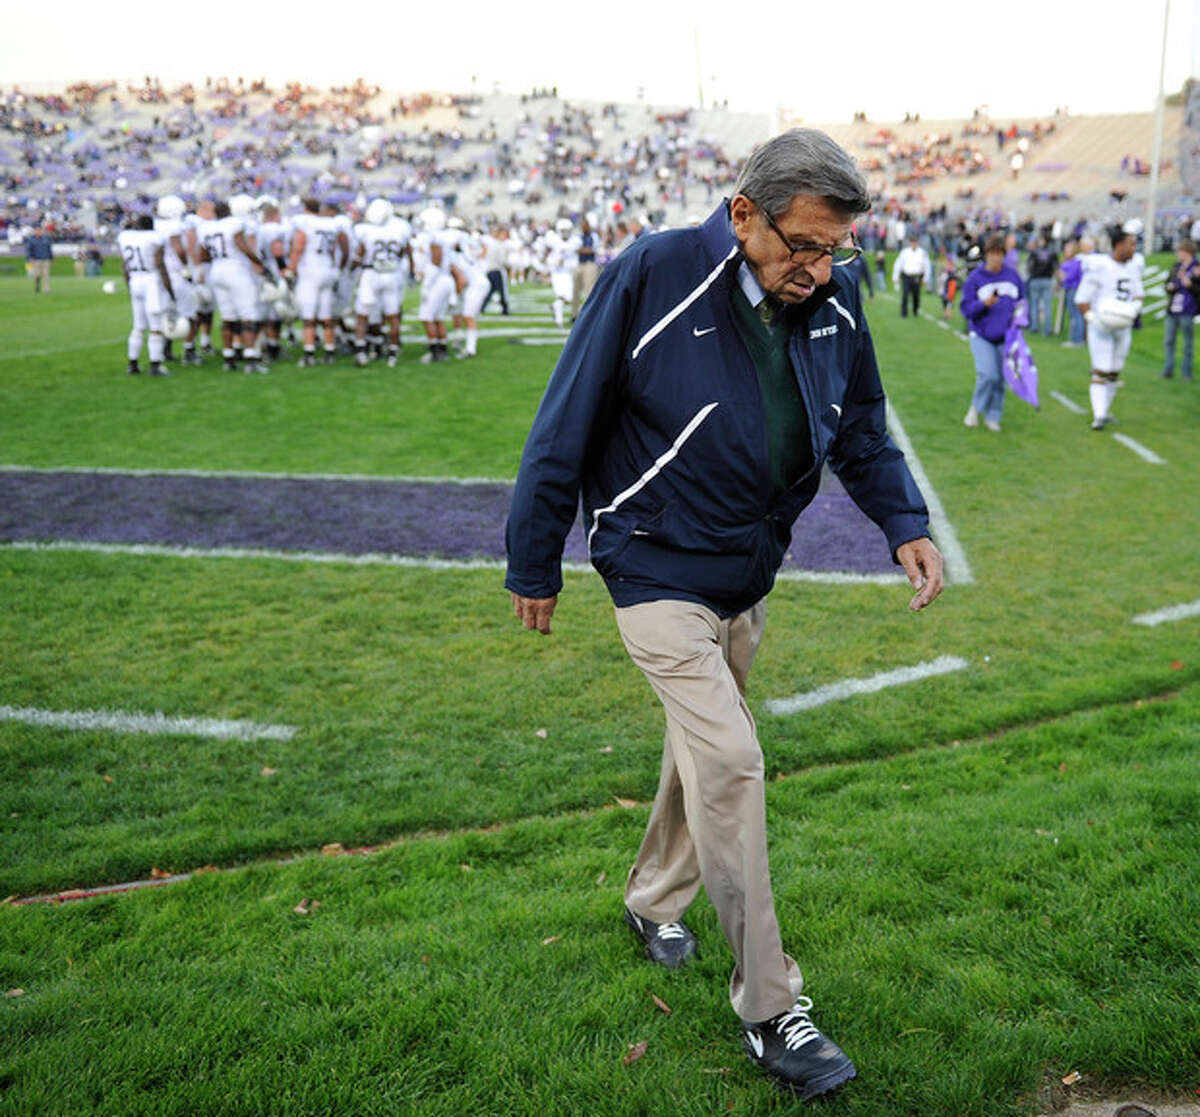 """FILE - In this Oct. 22, 2011 file photo, Penn State coach Joe Paterno walks off the field after warmups before an NCAA college football game against Northwestern in Evanston, Ill. NCAA president Mark Emmert says he isn't ruling out the possibility of shutting down the Penn State football program in the wake of the Jerry Sandusky child sex abuse scandal. In a PBS interview Monday night, July 16, 2012, he said he doesn't want to """"take anything off the table"""" if the NCAA determines penalties against Penn State are warranted. (AP Photo/Jim Prisching, File)"""